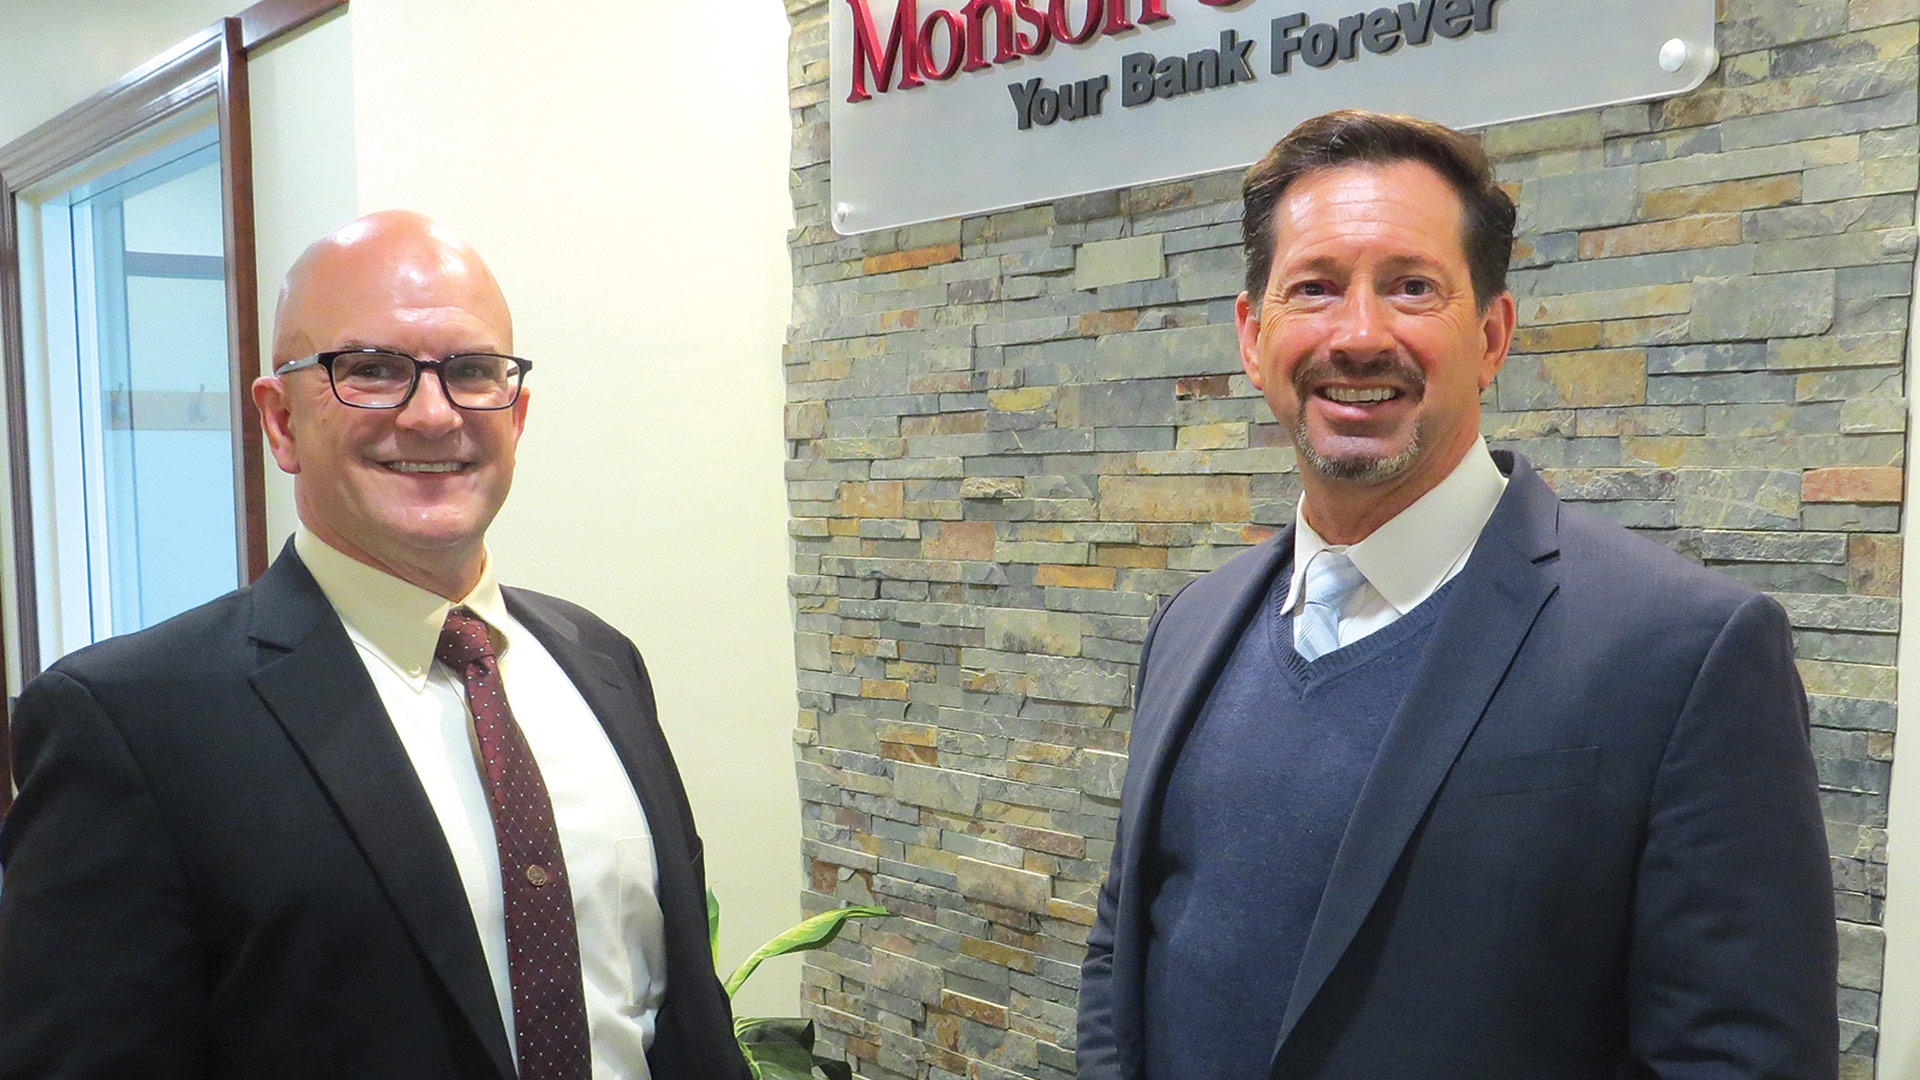 Dan Moriarty, left, and Mike Rouette both found a common denominator